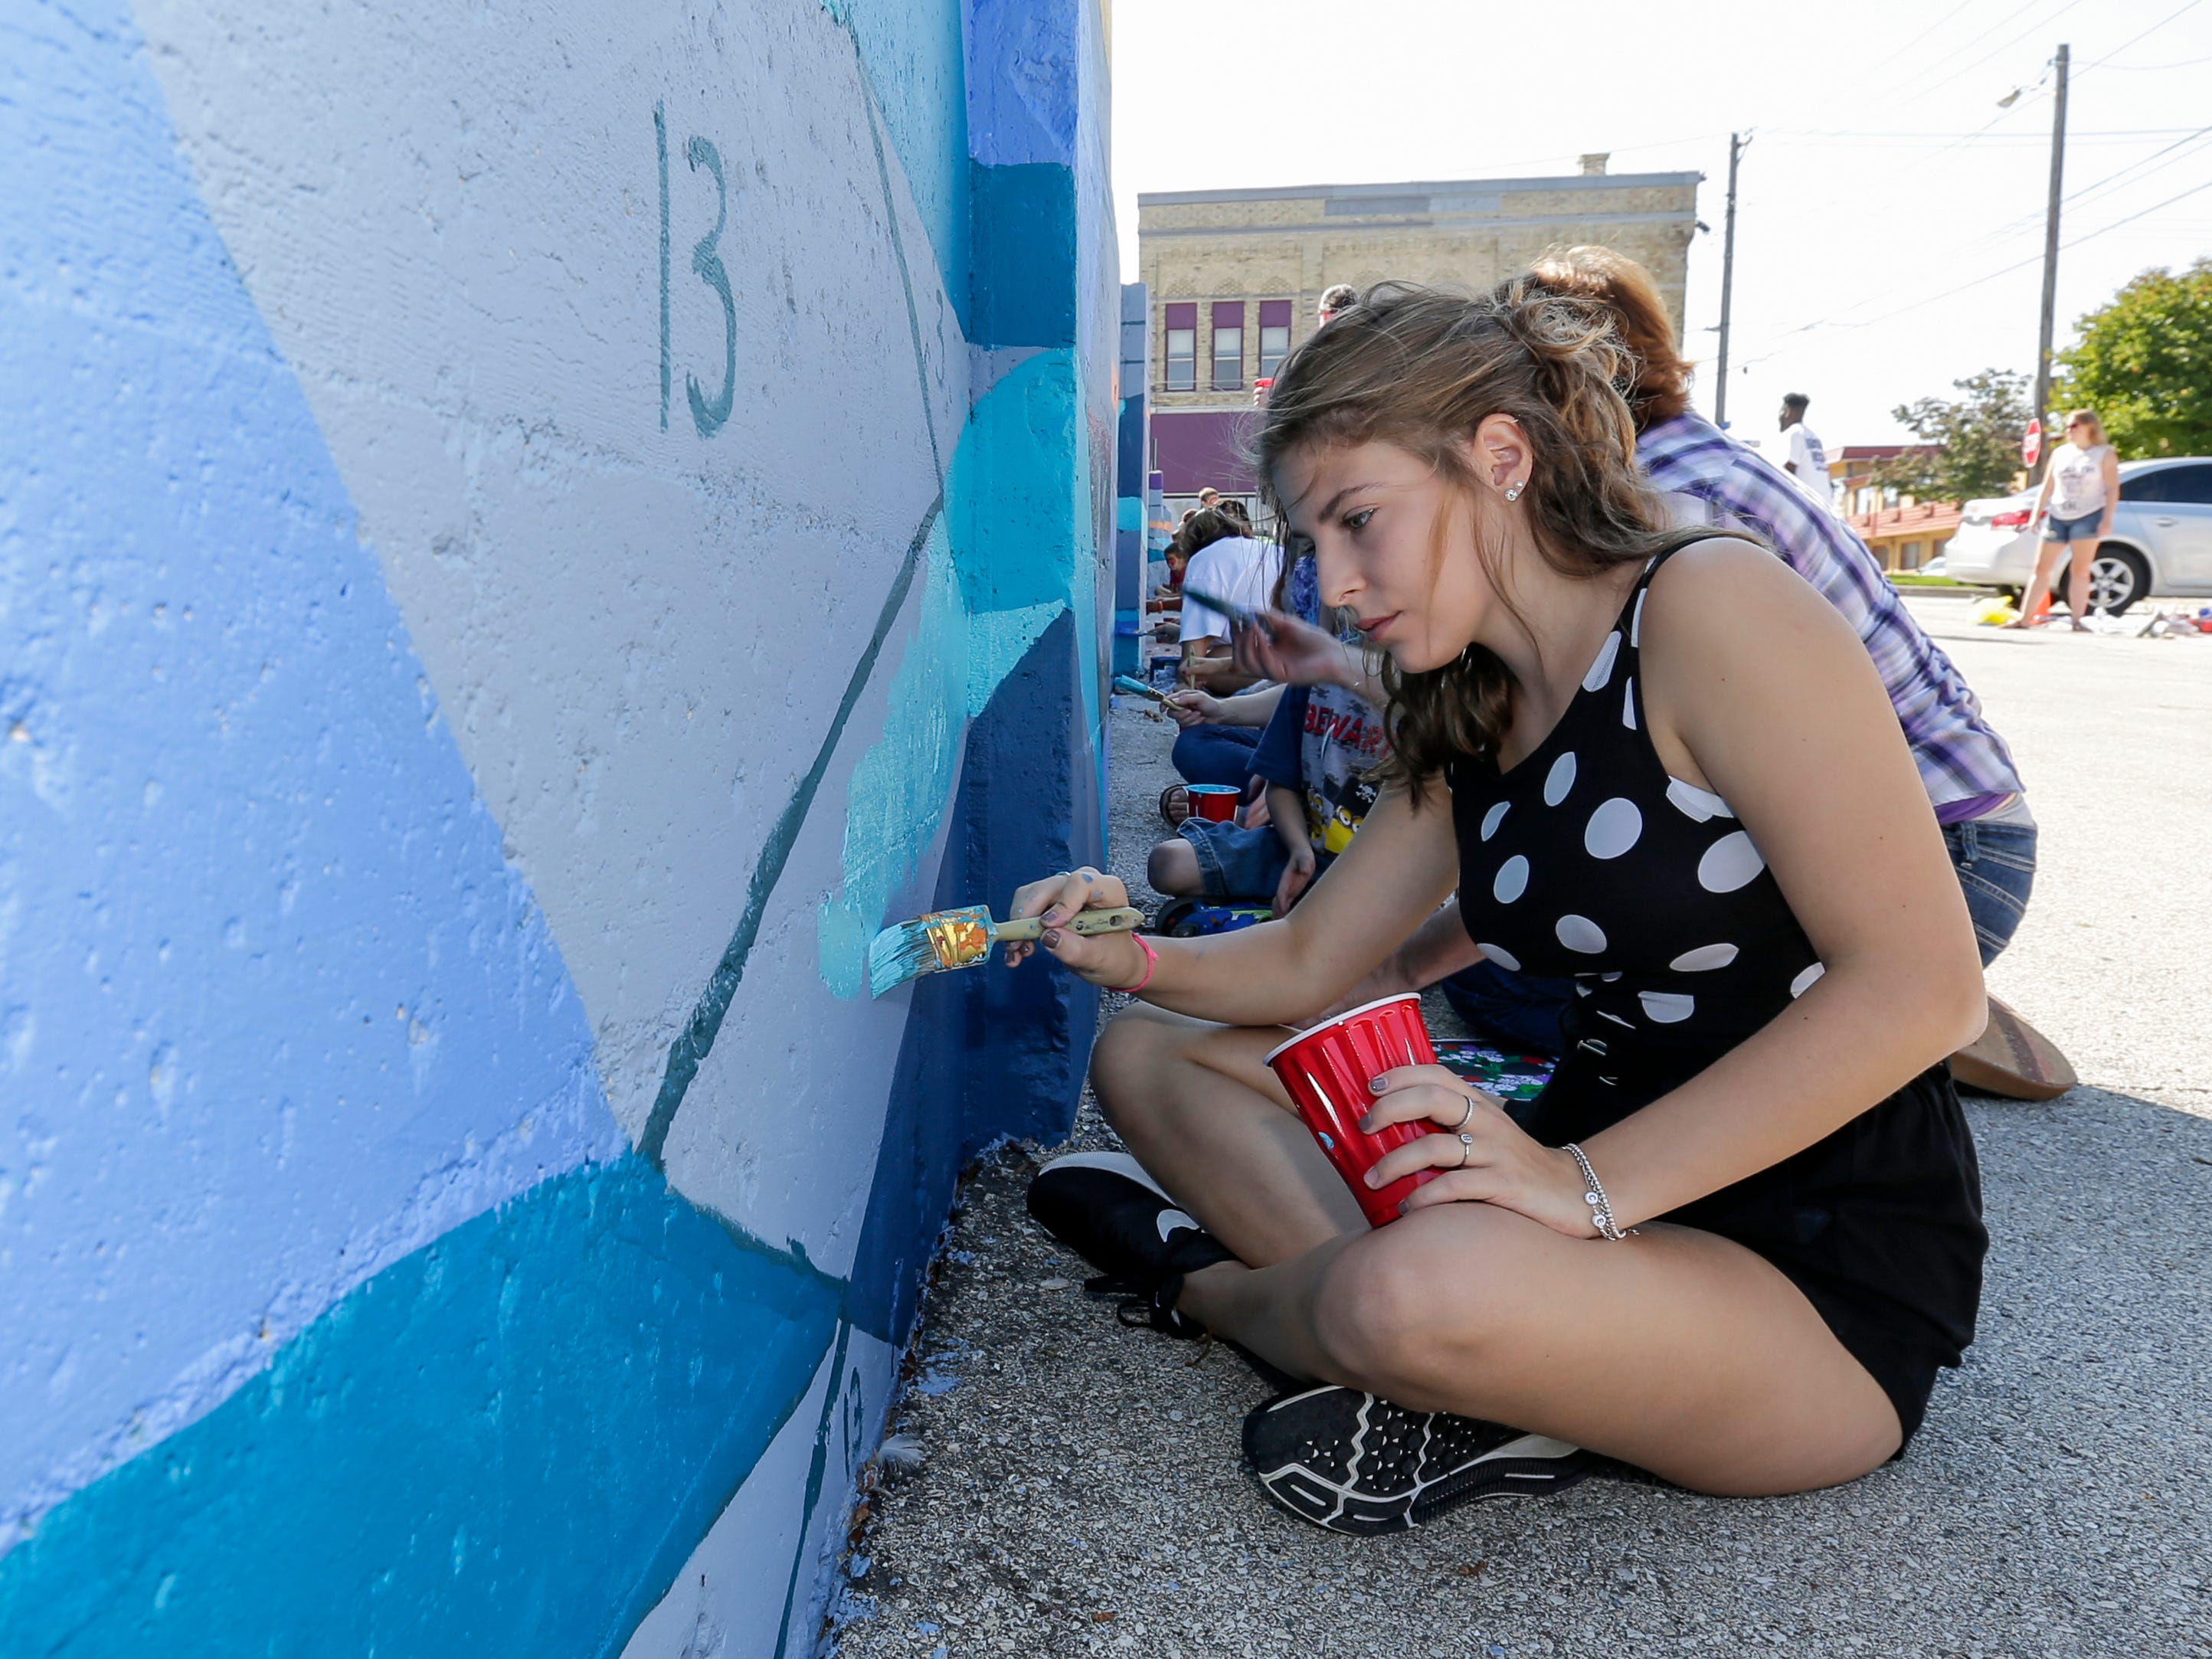 Bea Pizzinini, a high school foreign exchange student from Italy, fills in a square of the public mural at 9th and Jay Street during Art Slam Saturday, September 15, 2018, in Manitowoc, Wis. Josh Clark/USA TODAY NETWORK-Wisconsin